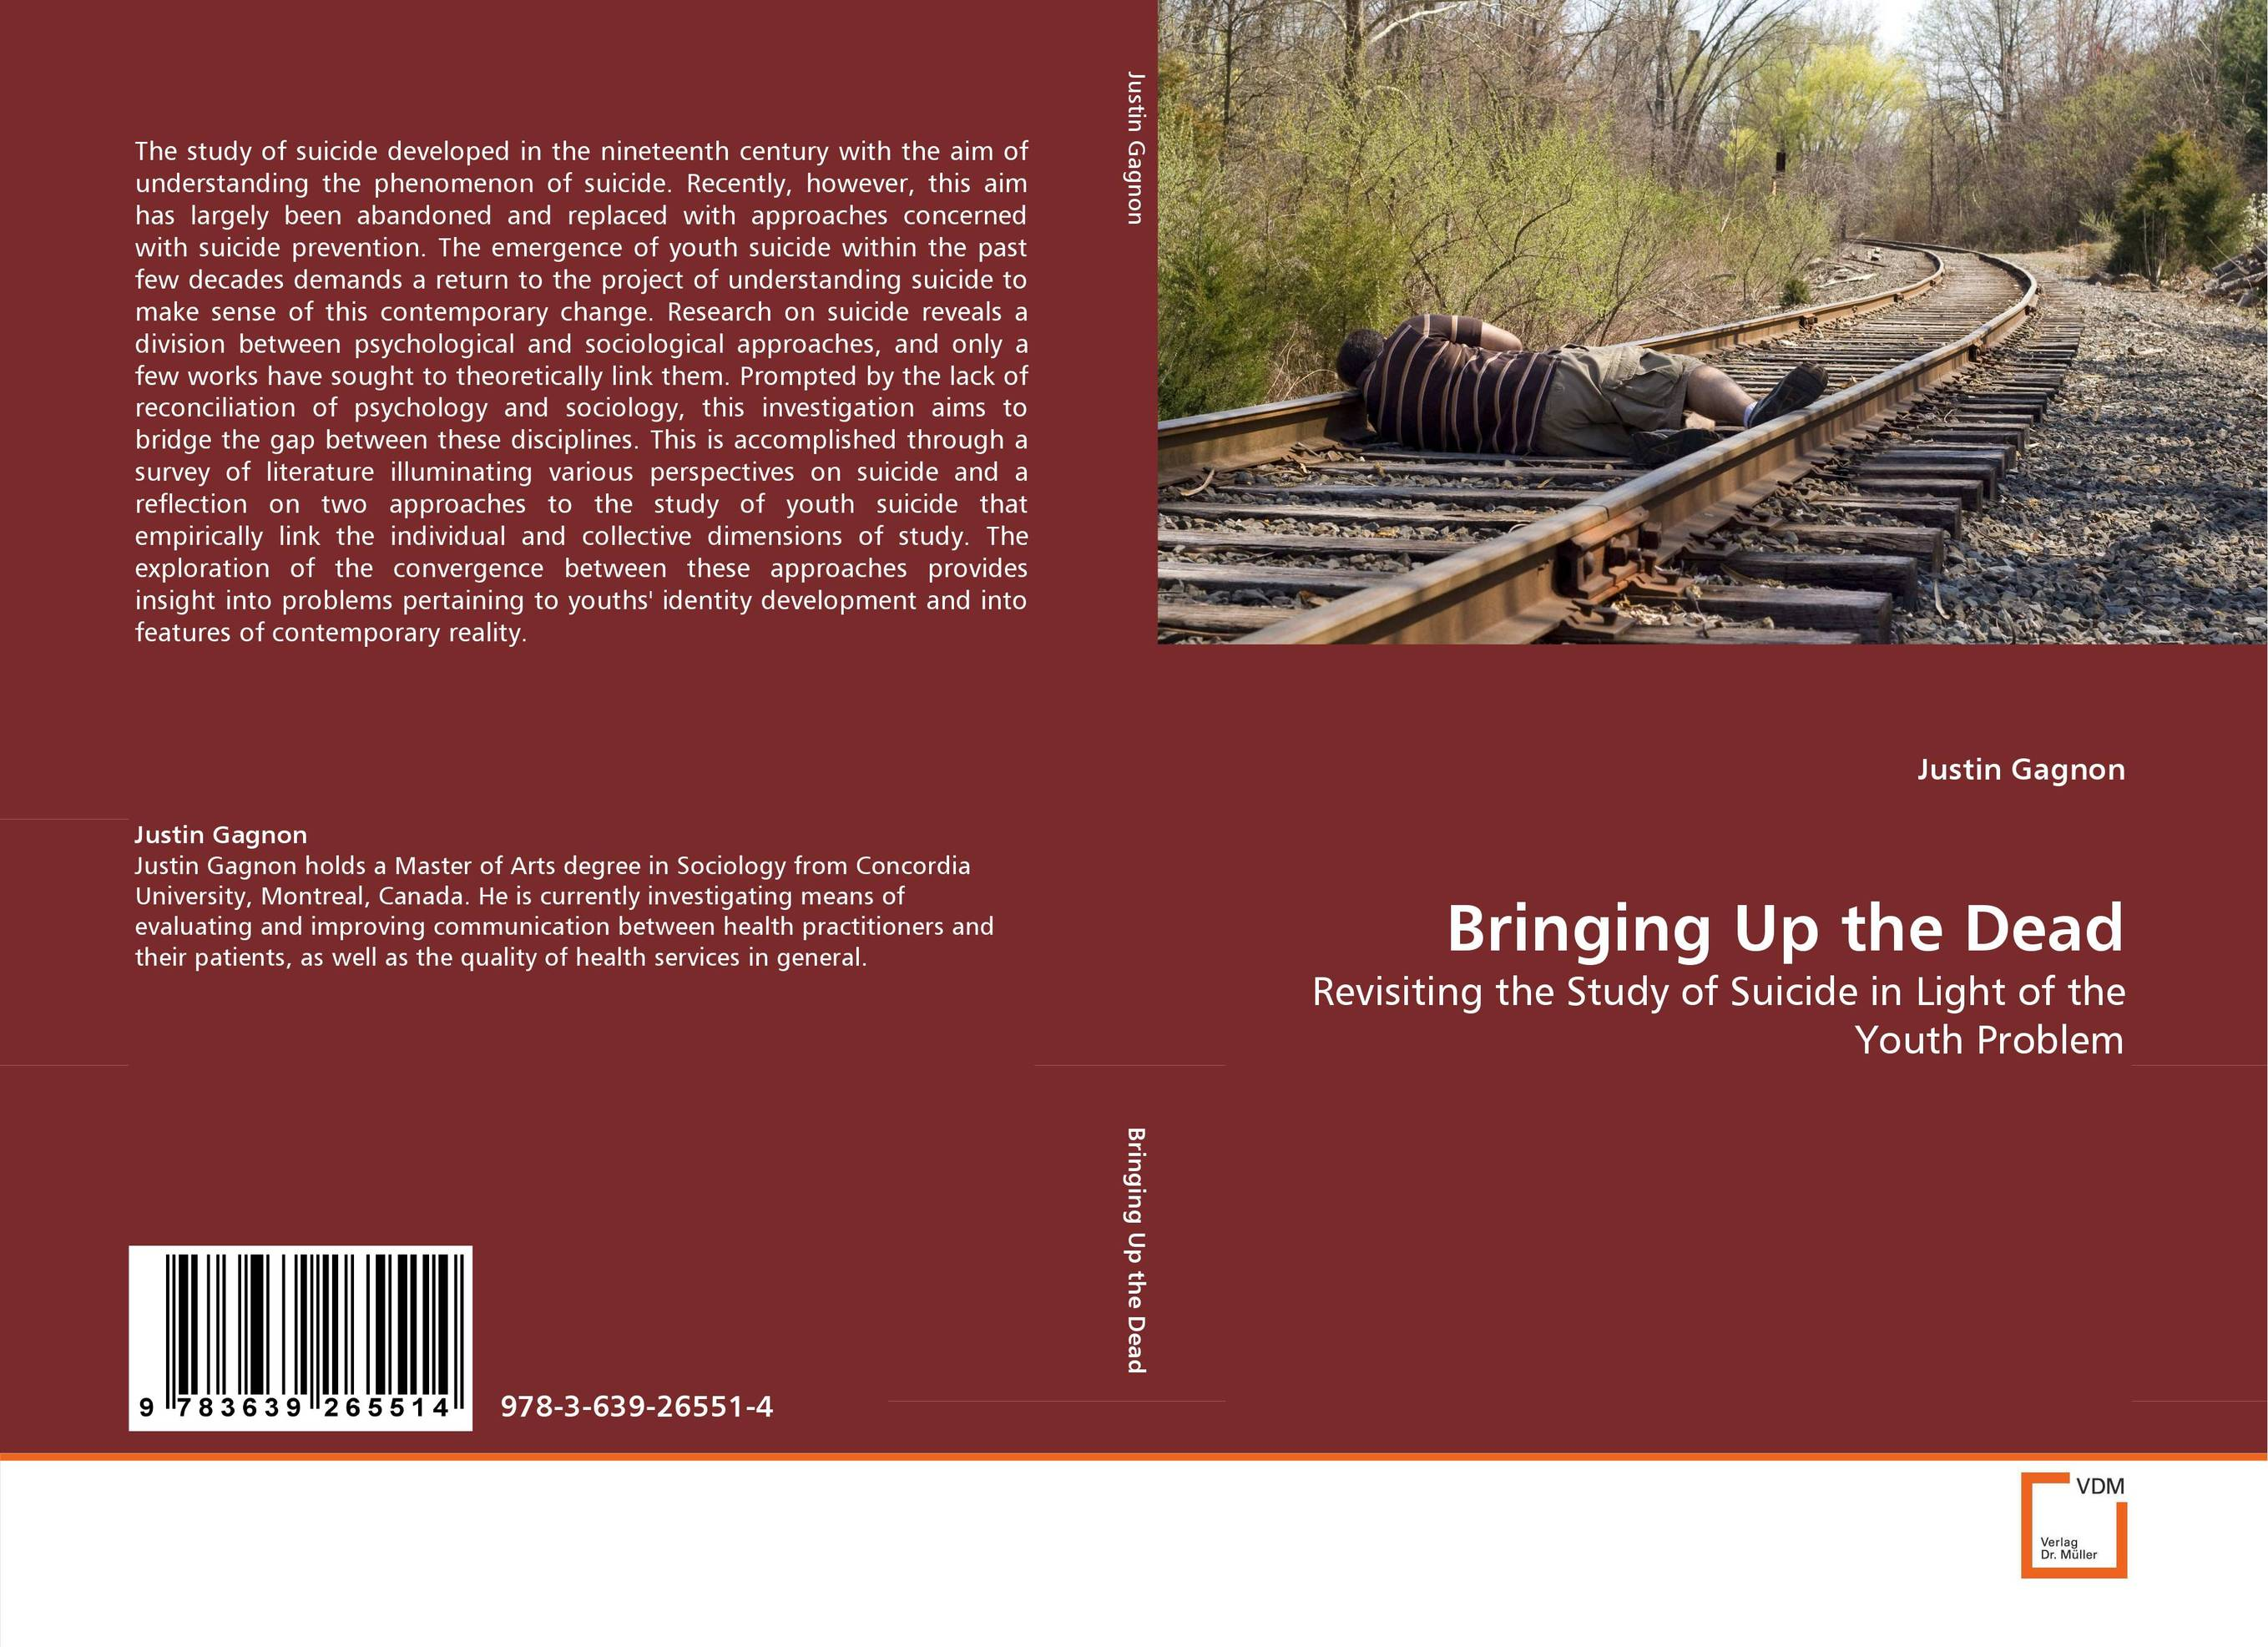 Bringing Up the Dead oxford textbook of suicidology and suicide prevention